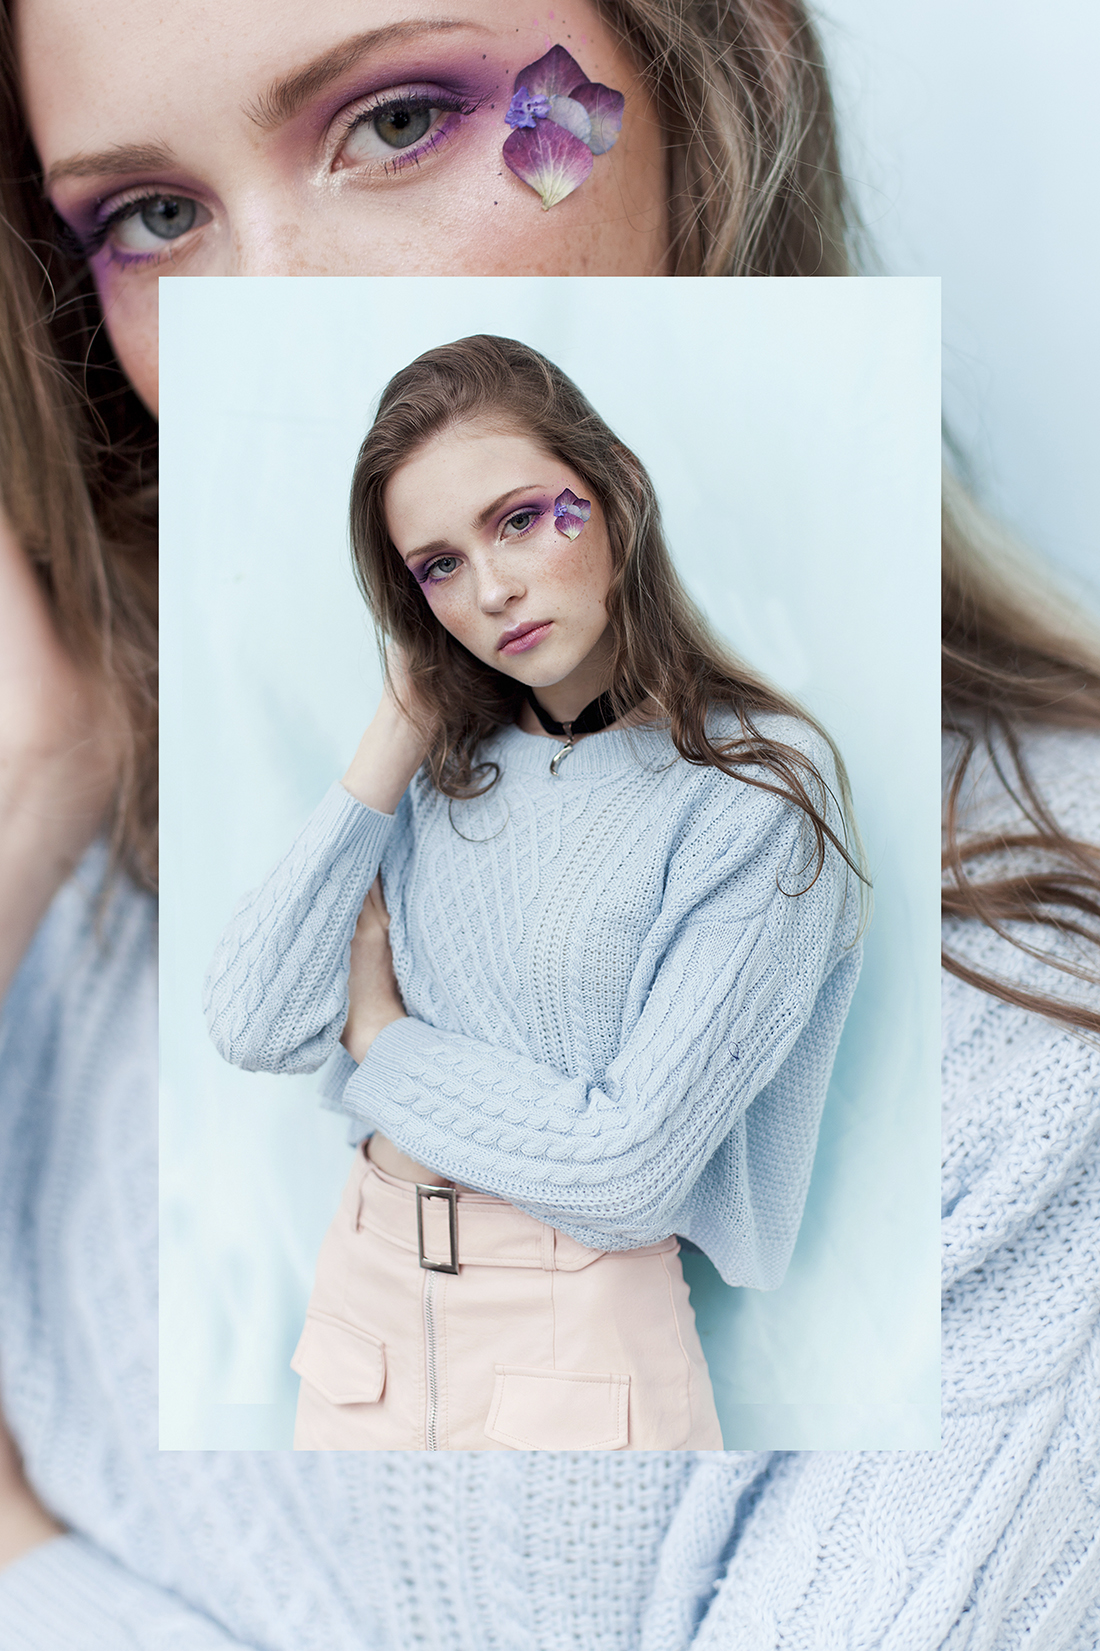 Laura Muraliova @ Ruta model management by Ailera Stone